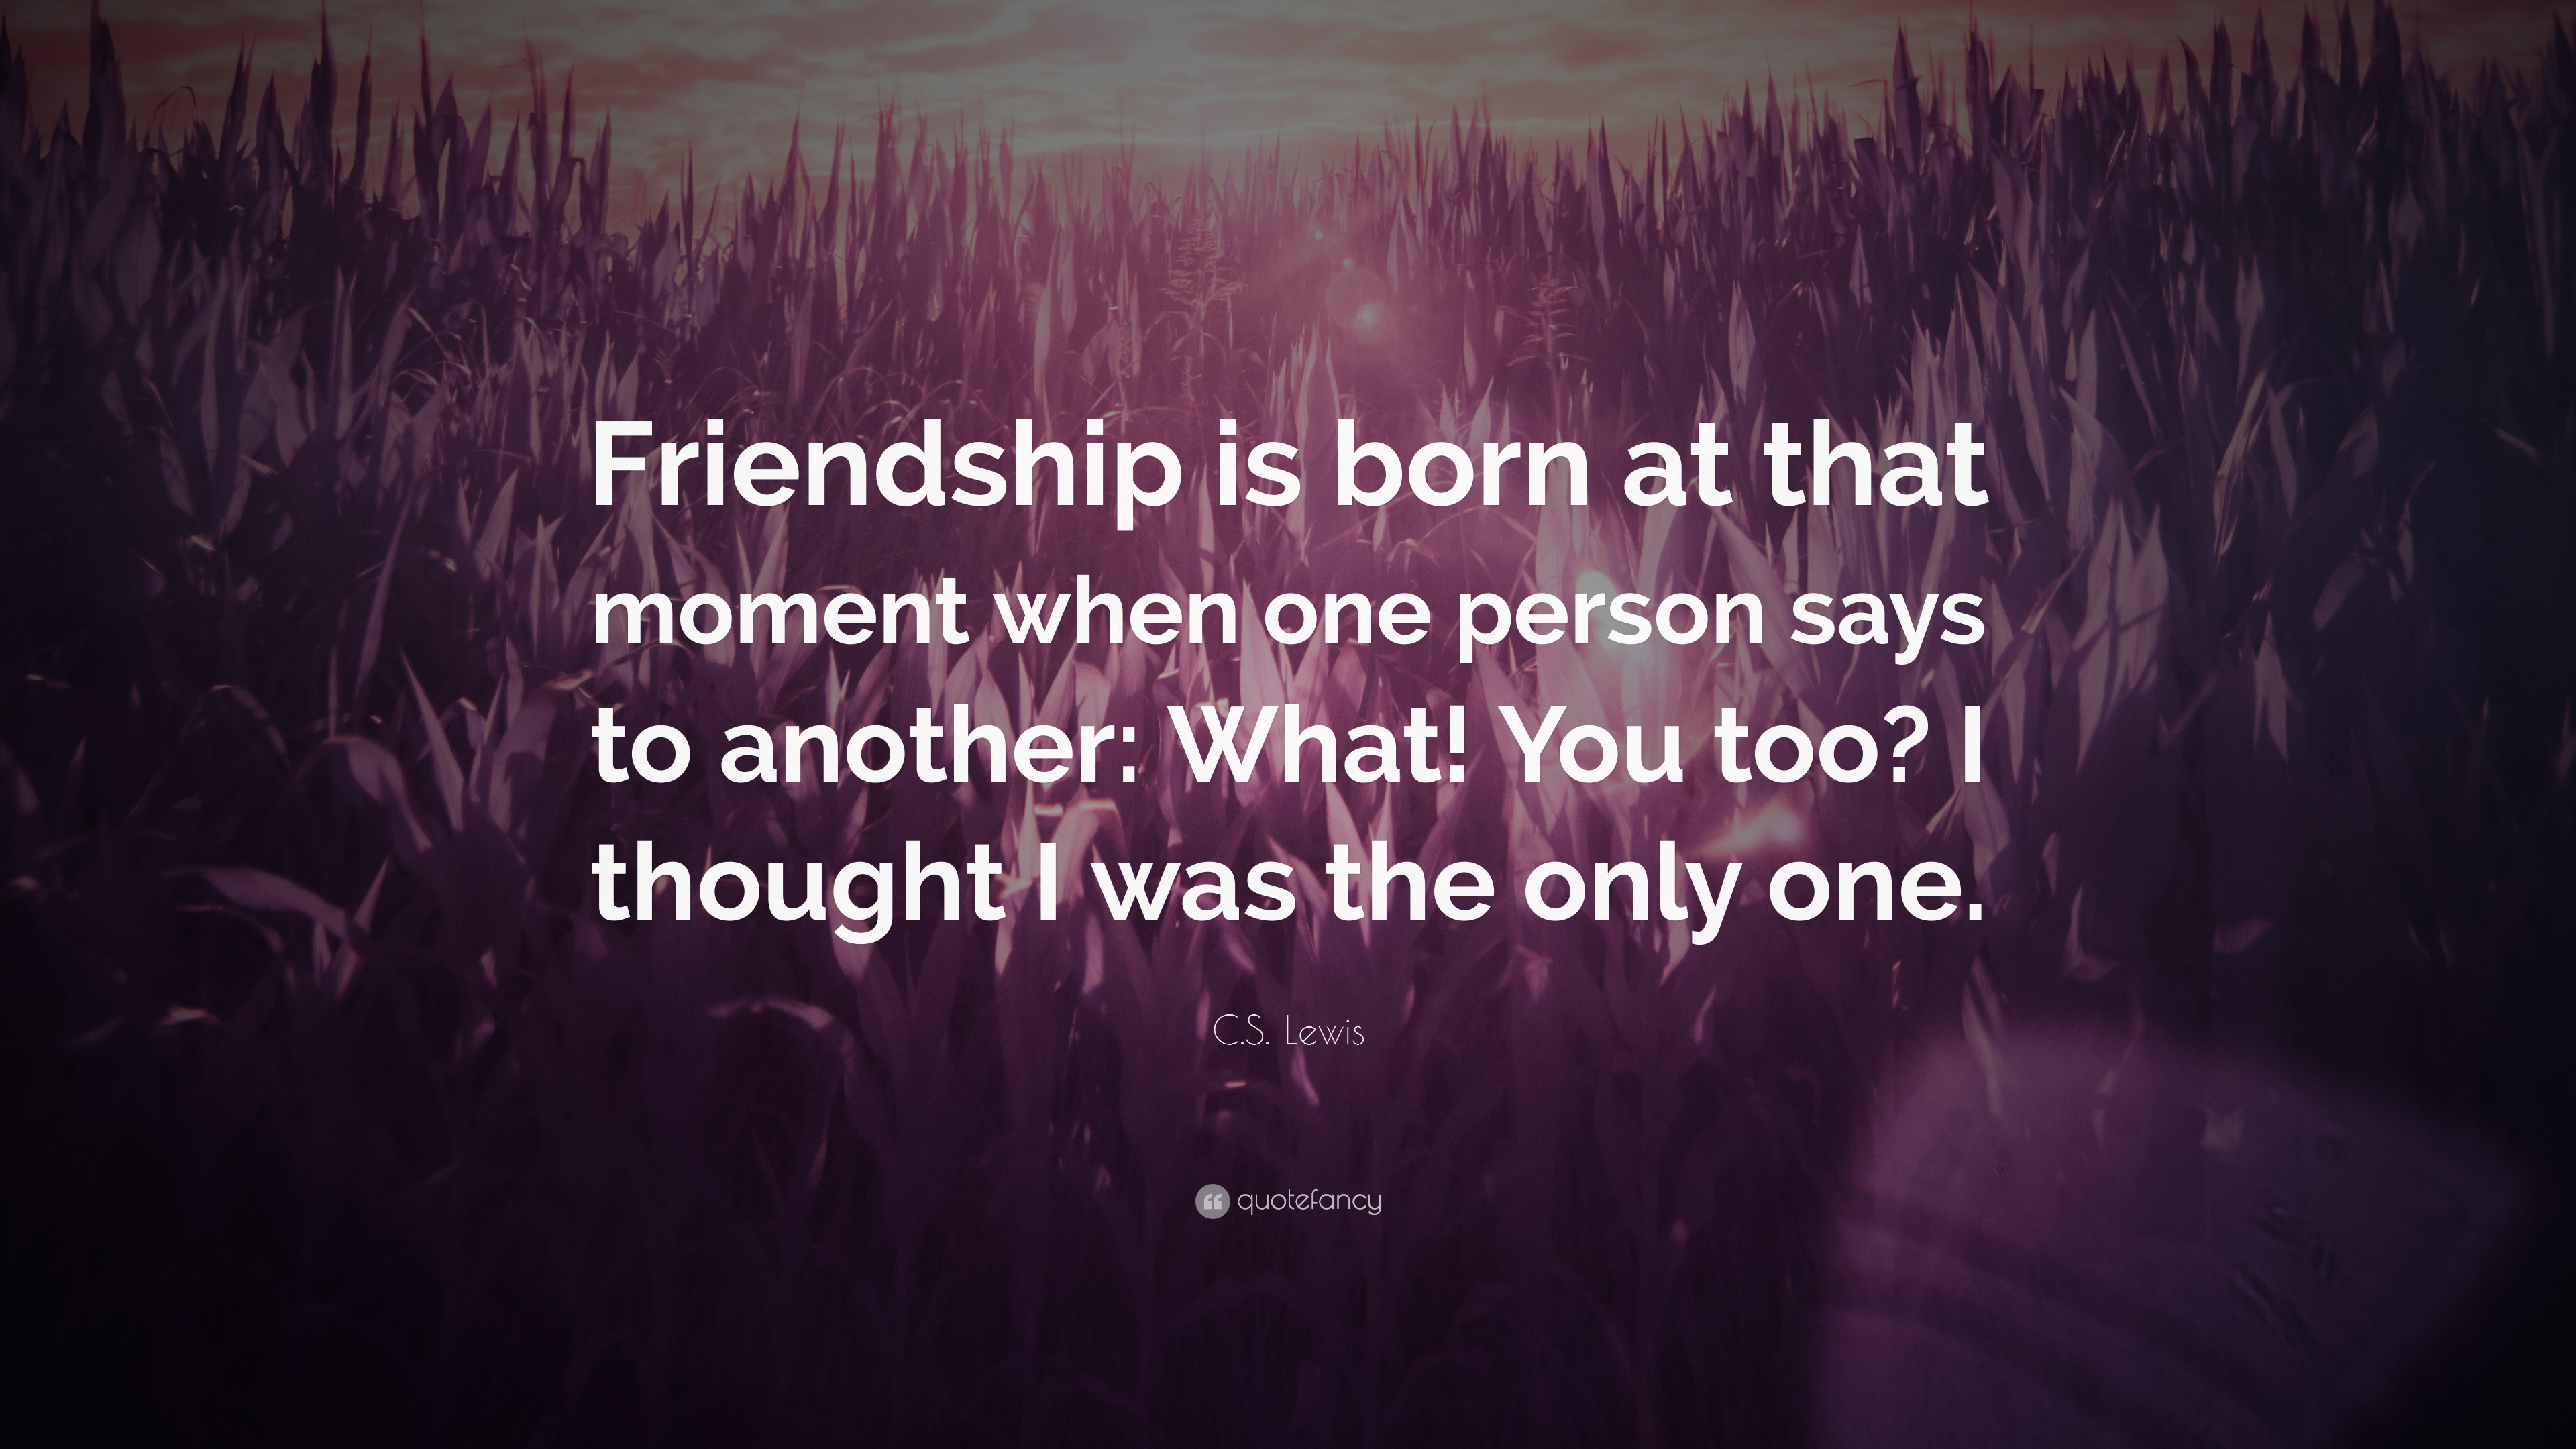 Quotes On Friendship Friendship Quotes 21 Wallpapers  Quotefancy